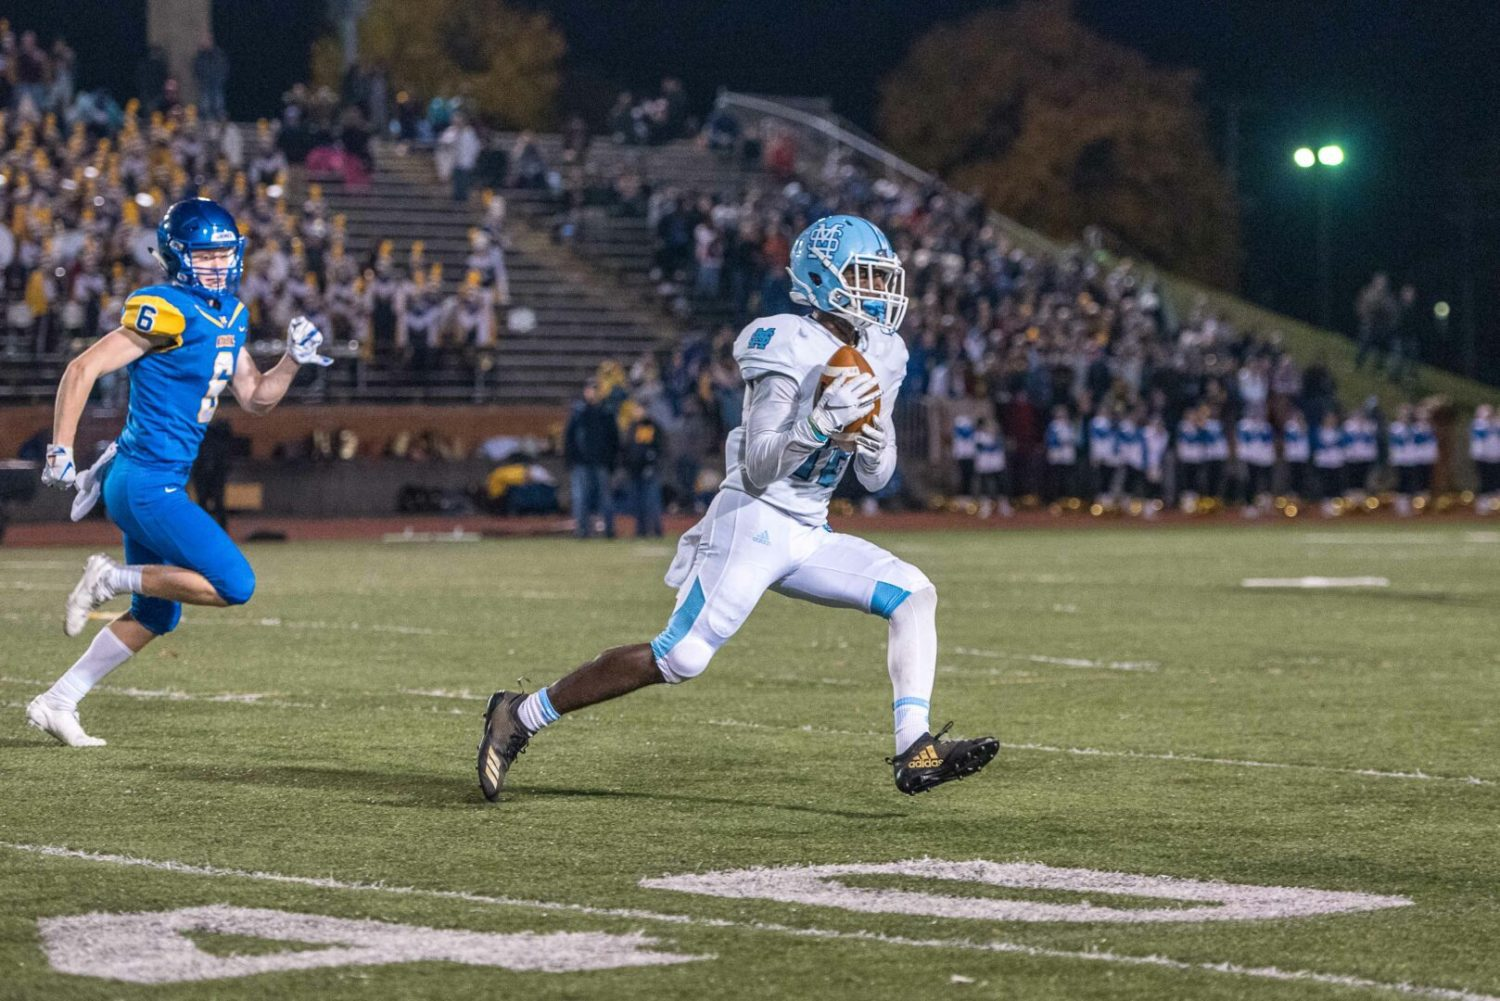 Mona Shores rallies from halftime deficit, beats Midland 20-13 in playoff opener